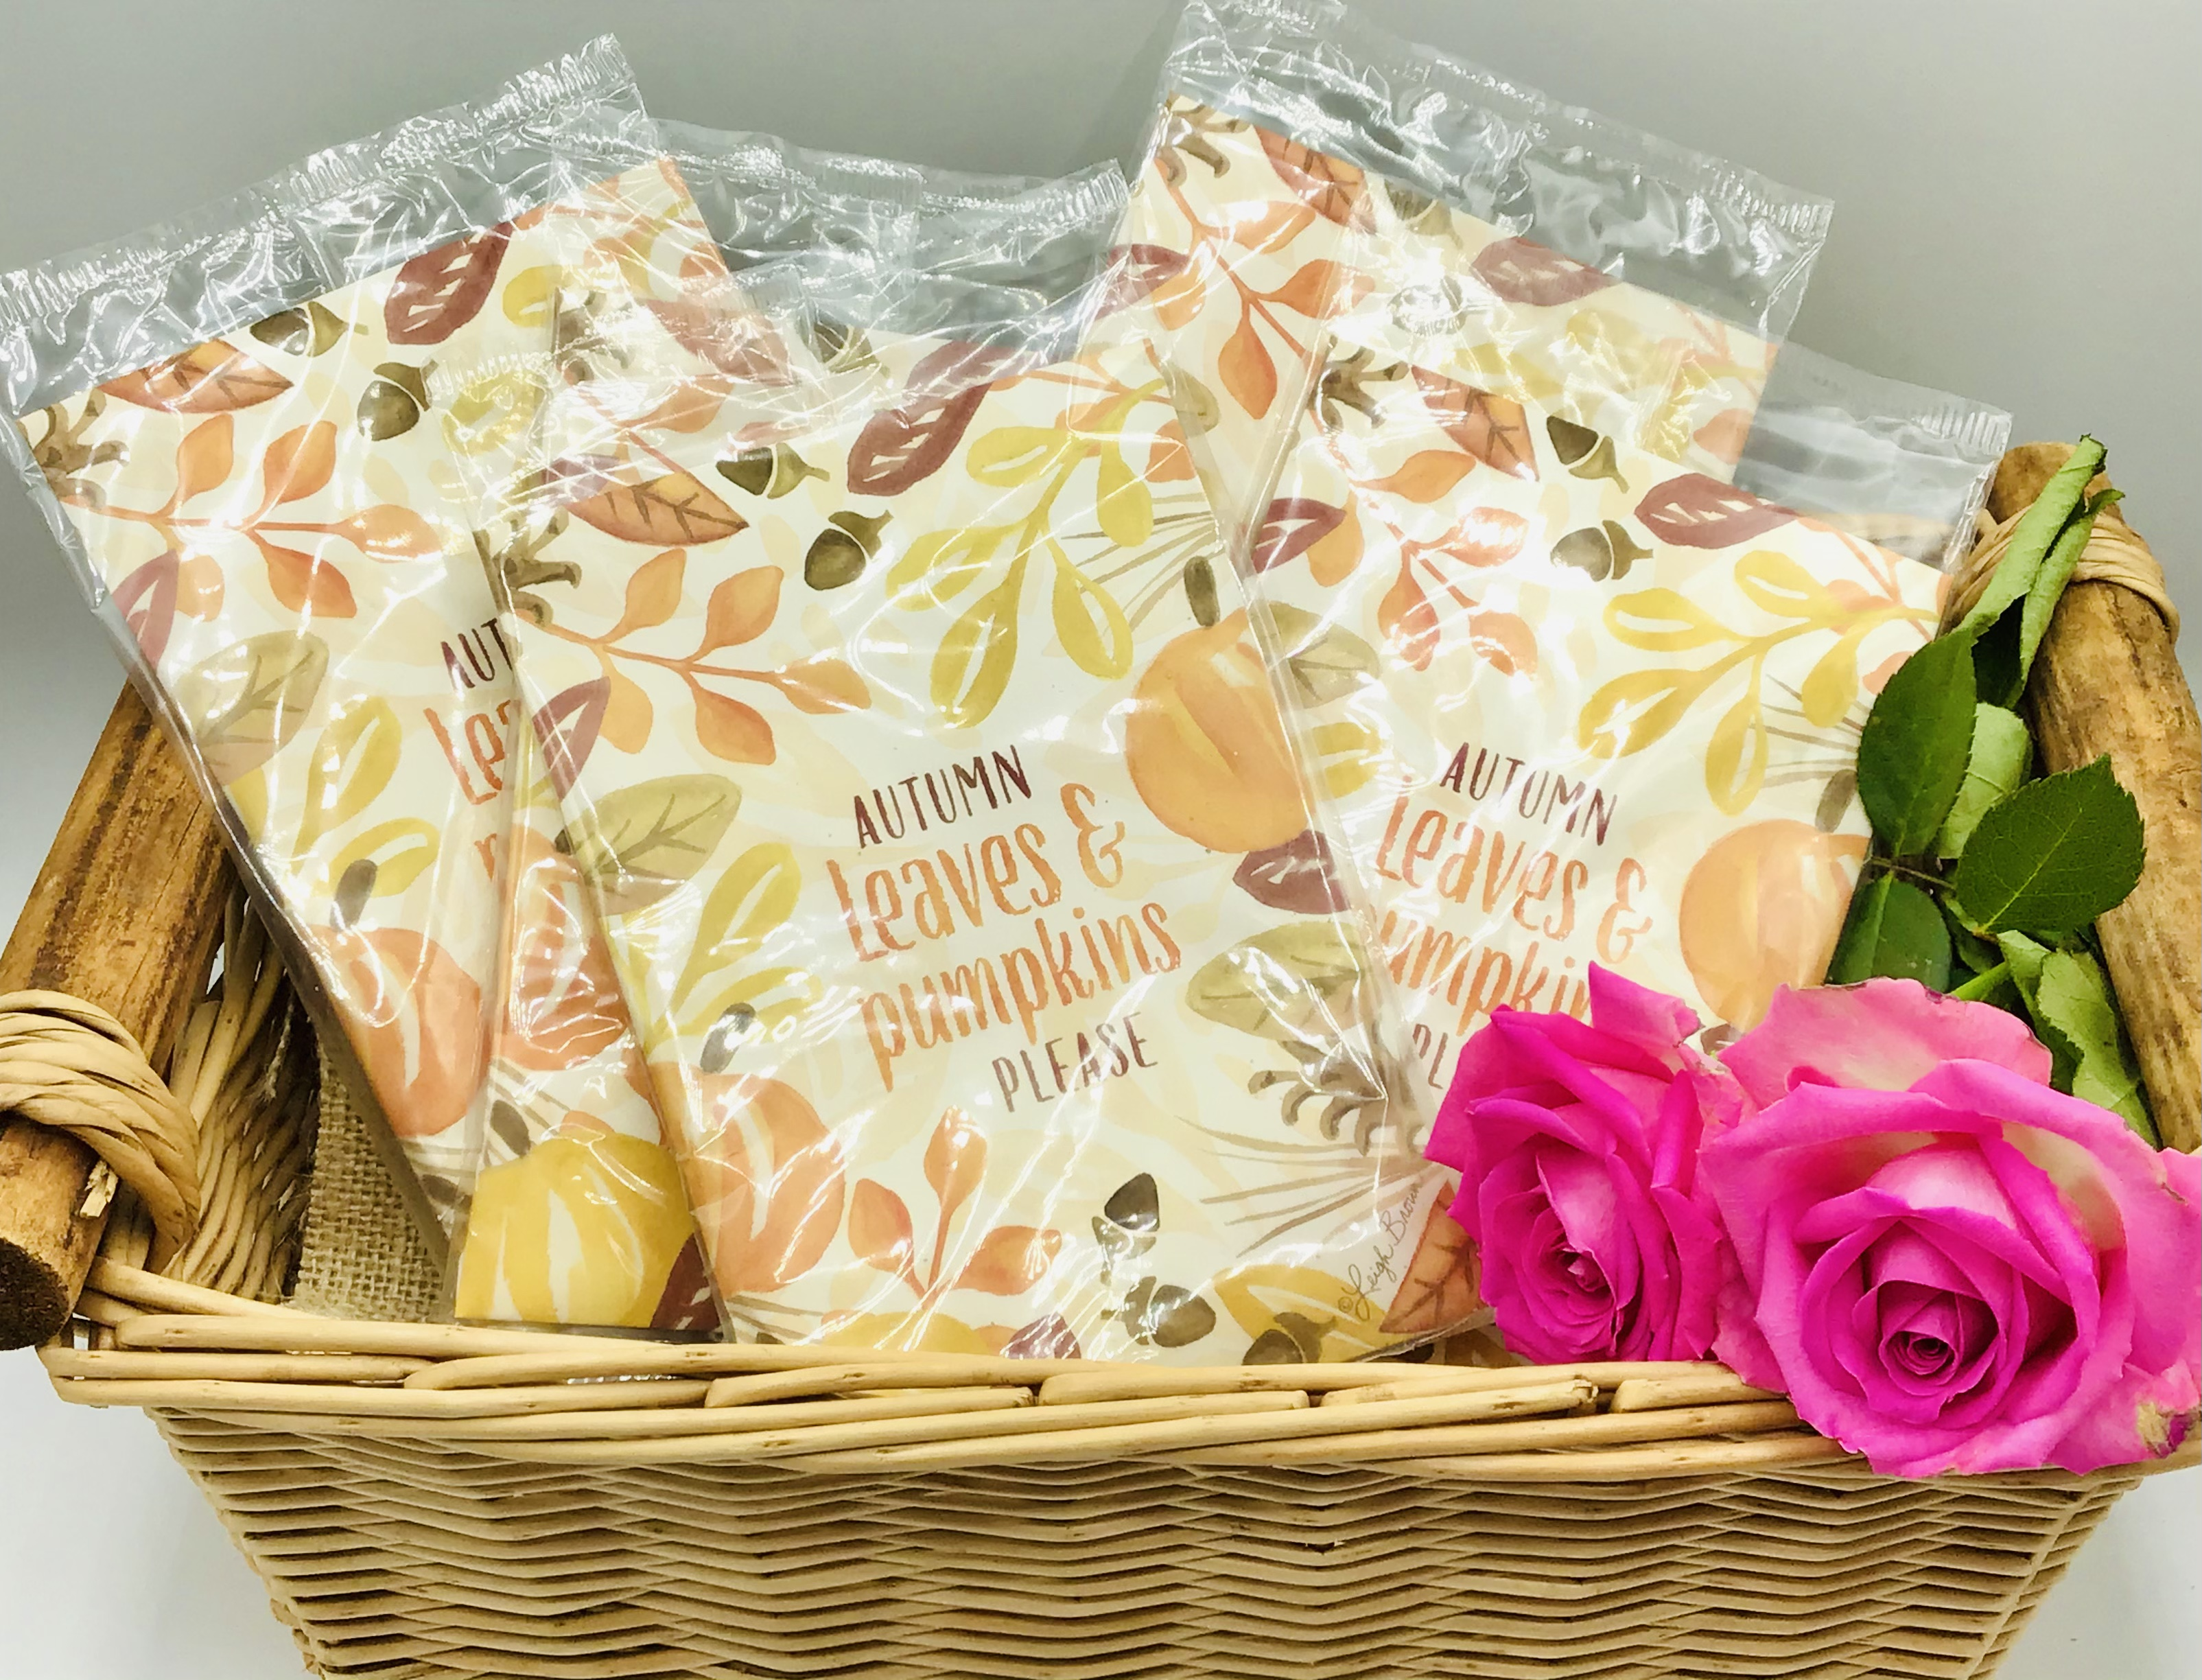 Autumn Leaves & Pumpkin Bundle